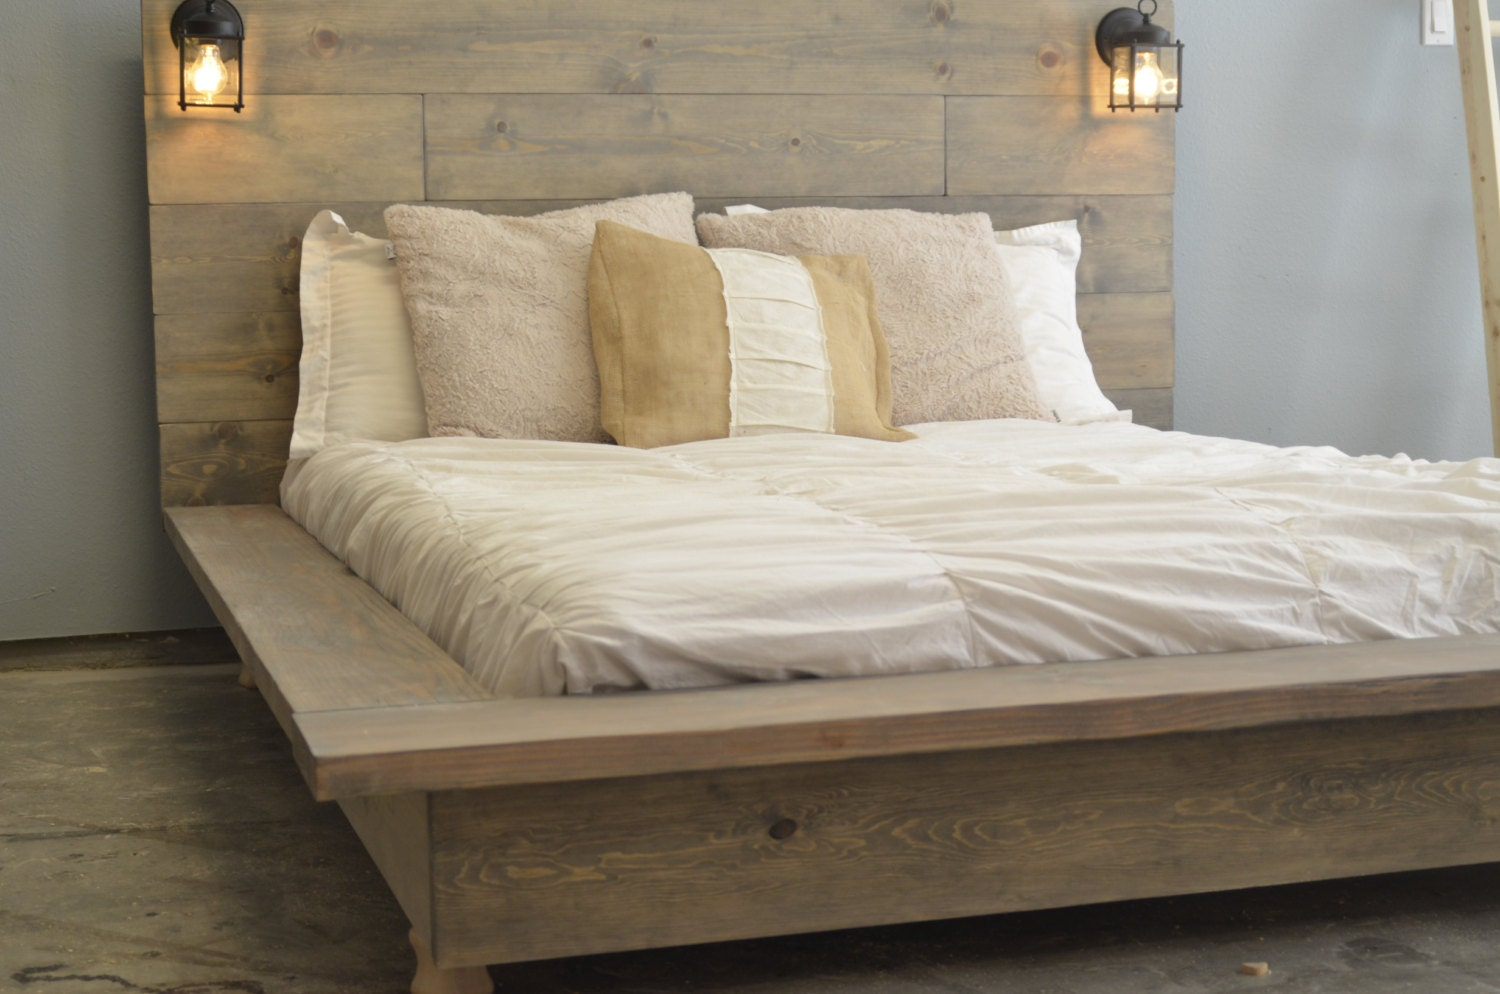 bed frame with lighted headboard quilmes zoom